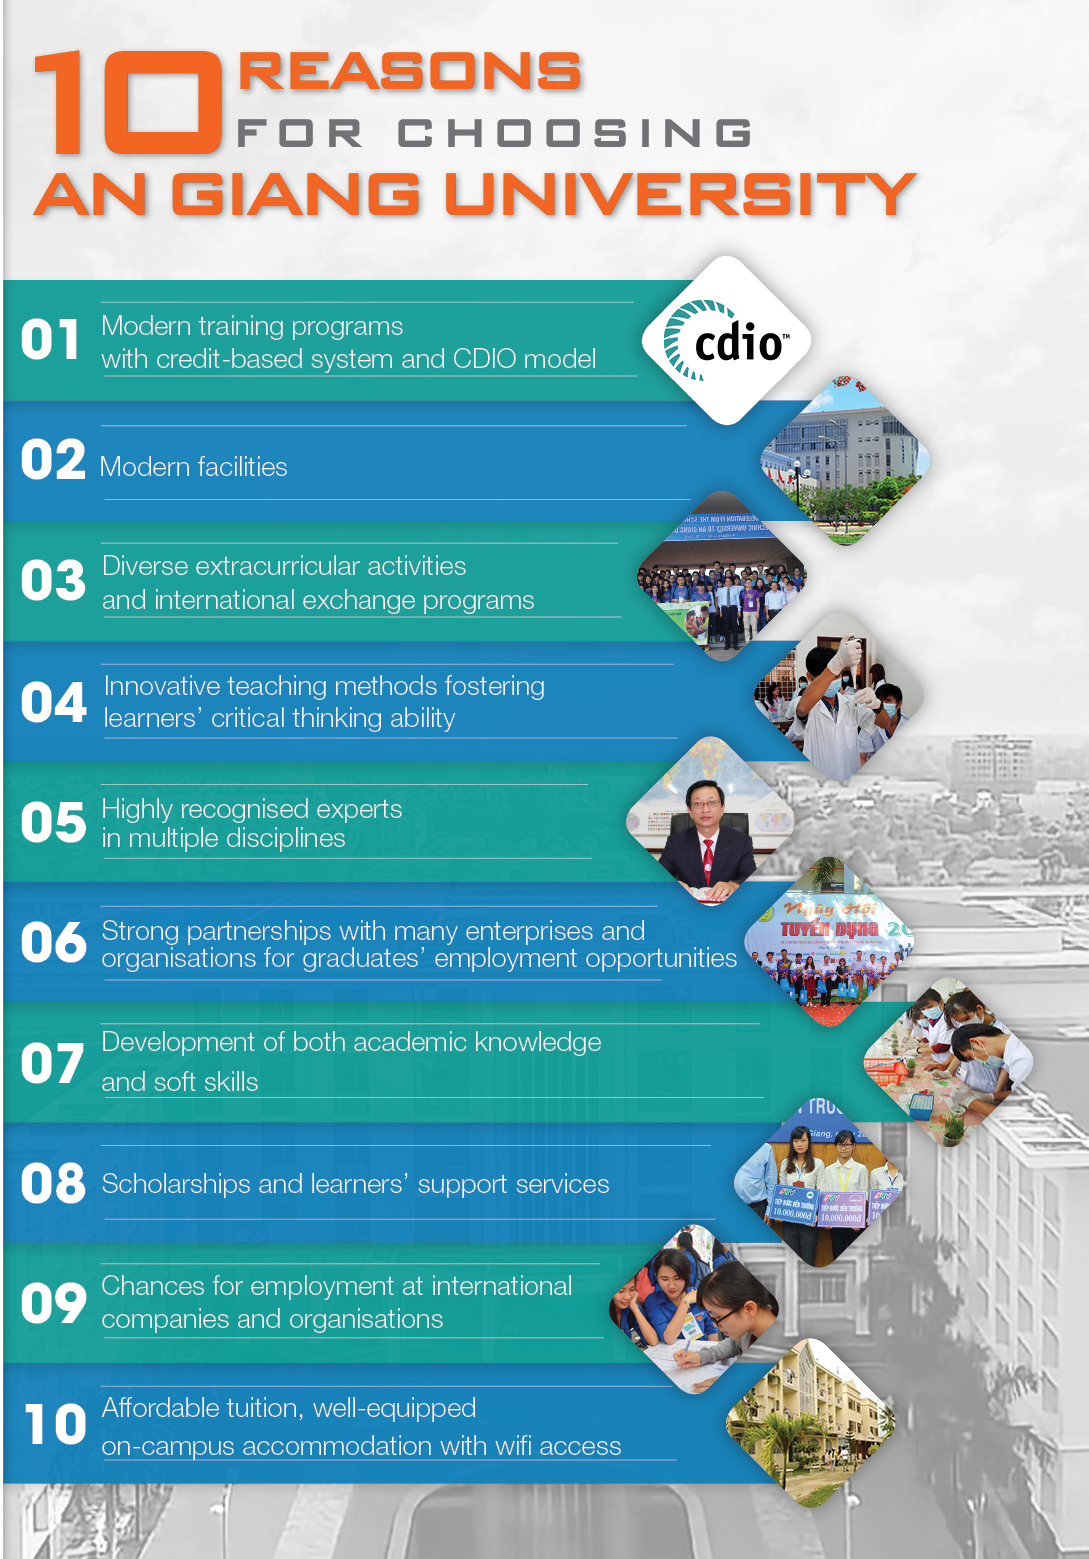 Ten reasons for choosing An Giang University